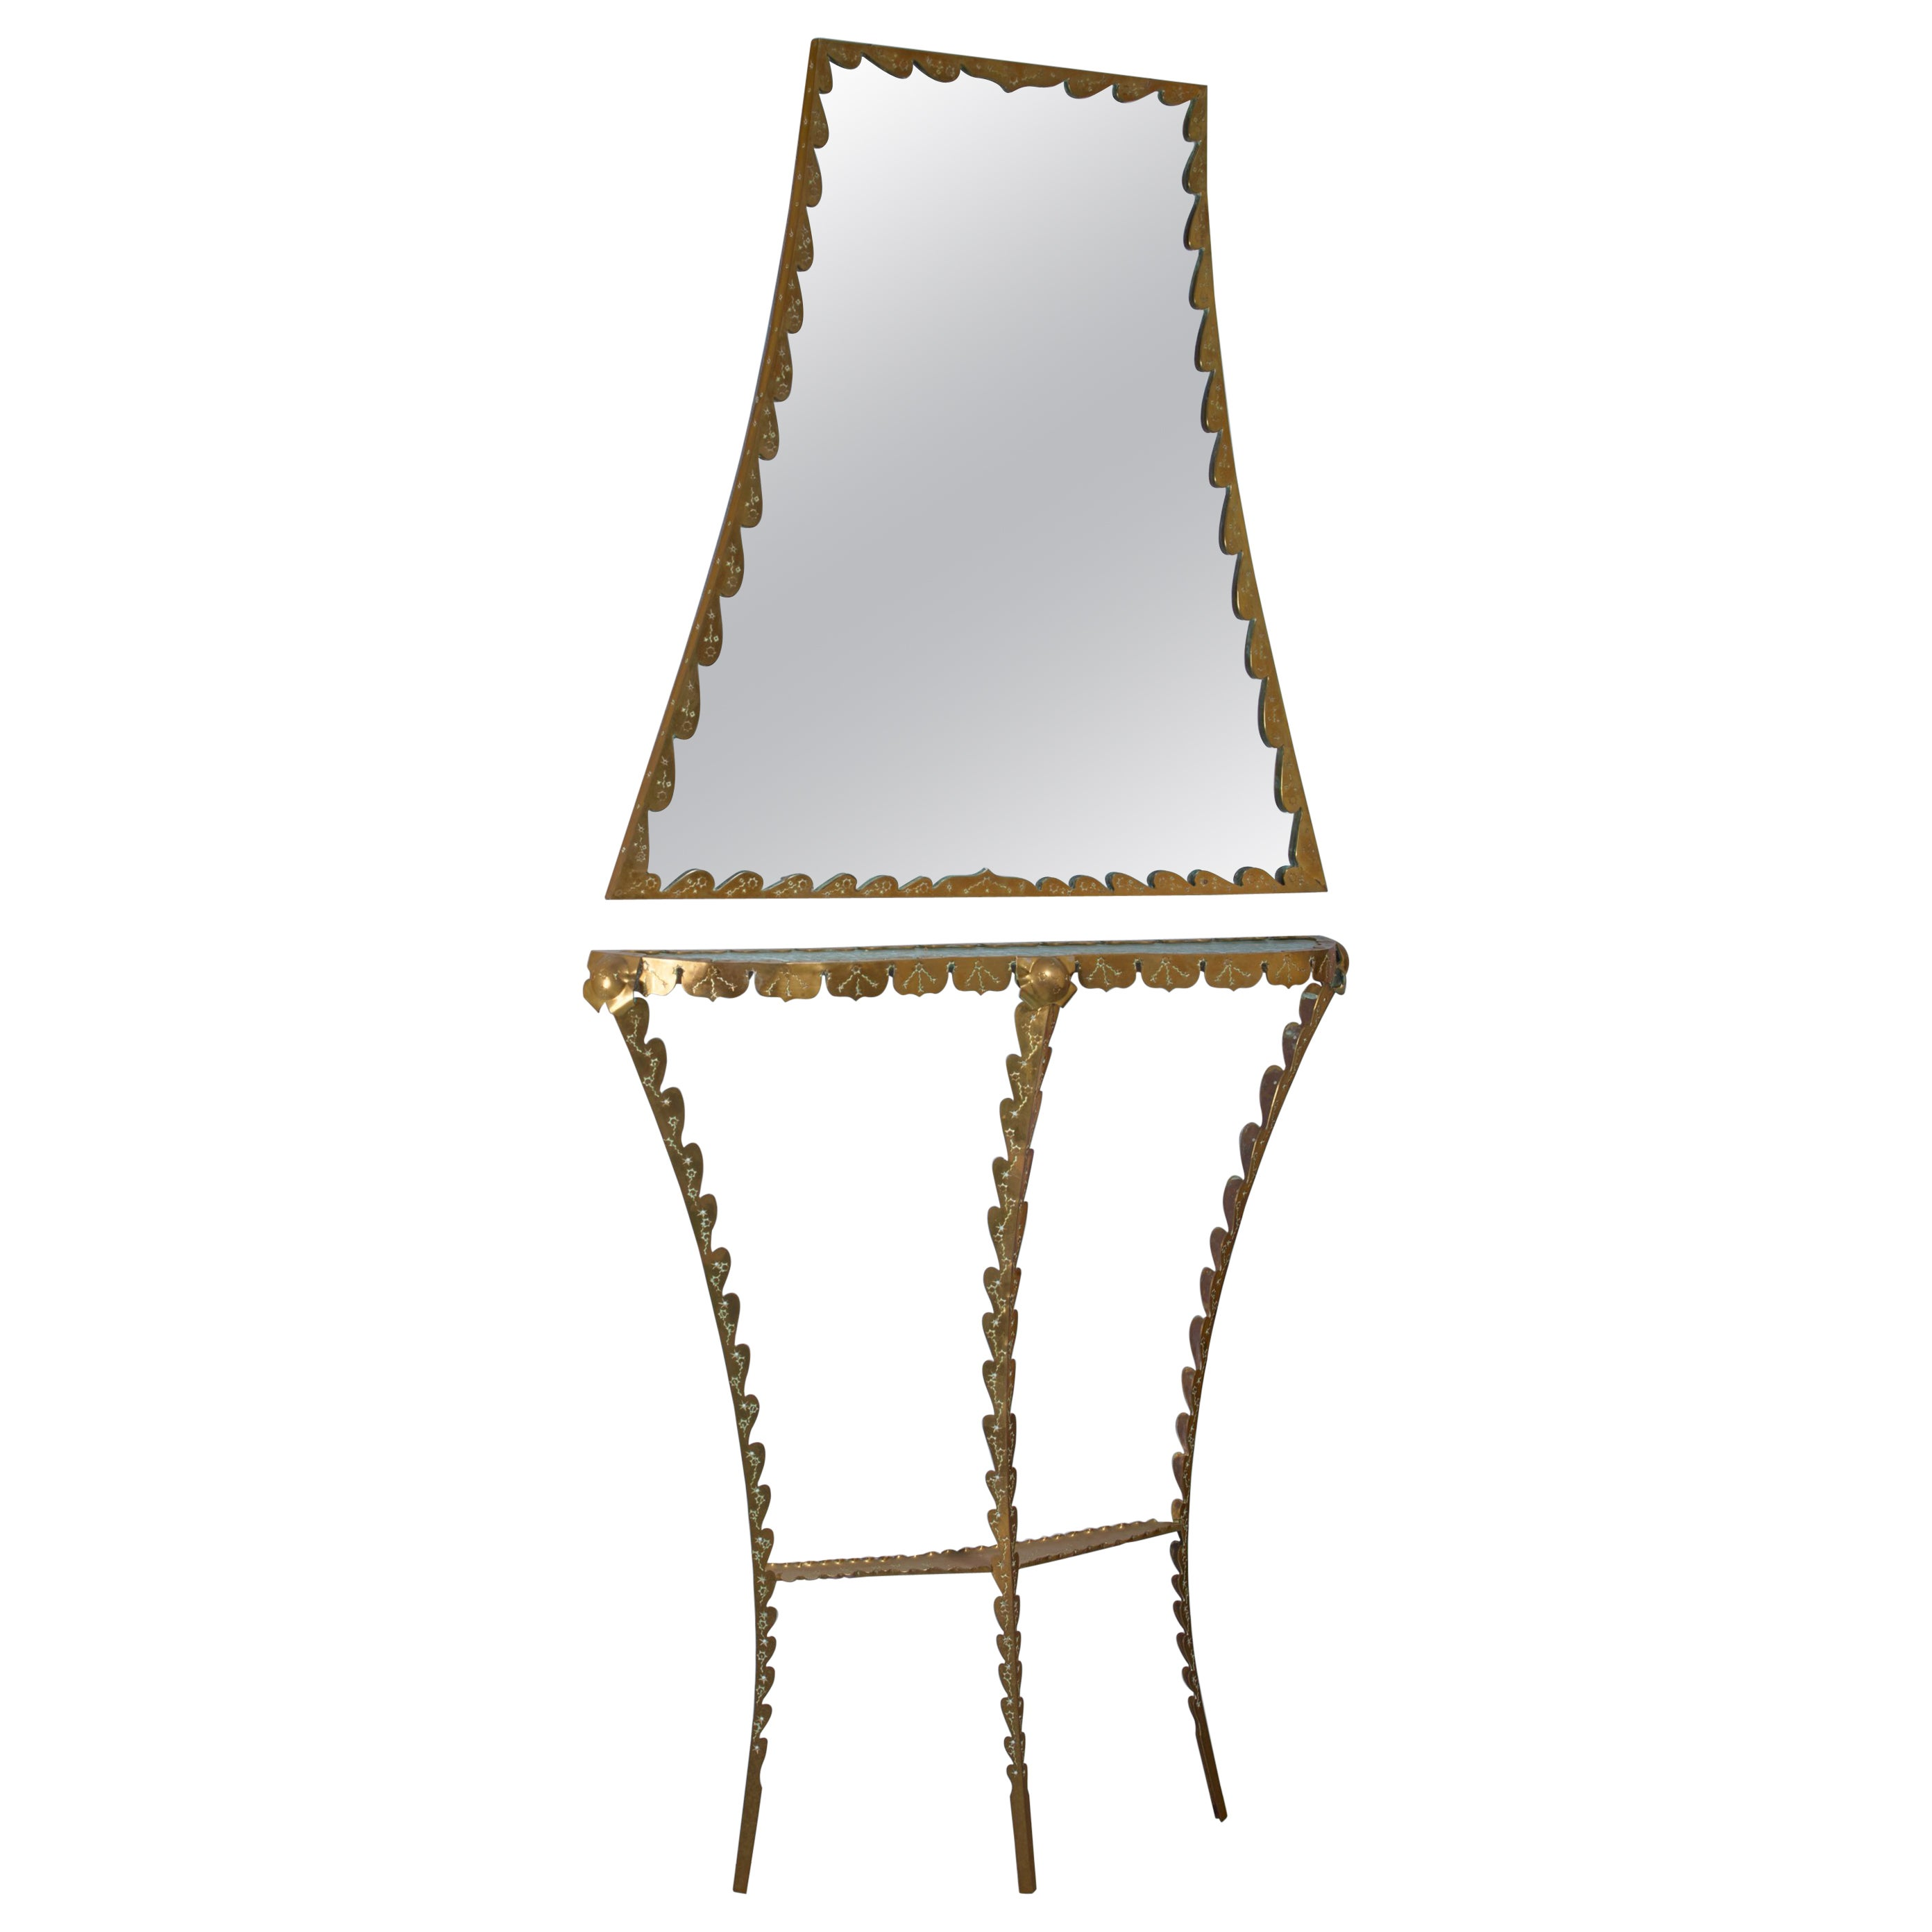 Brass Pier Luigi Colli  Console Table with Wall Mirror, Italy, 1940s